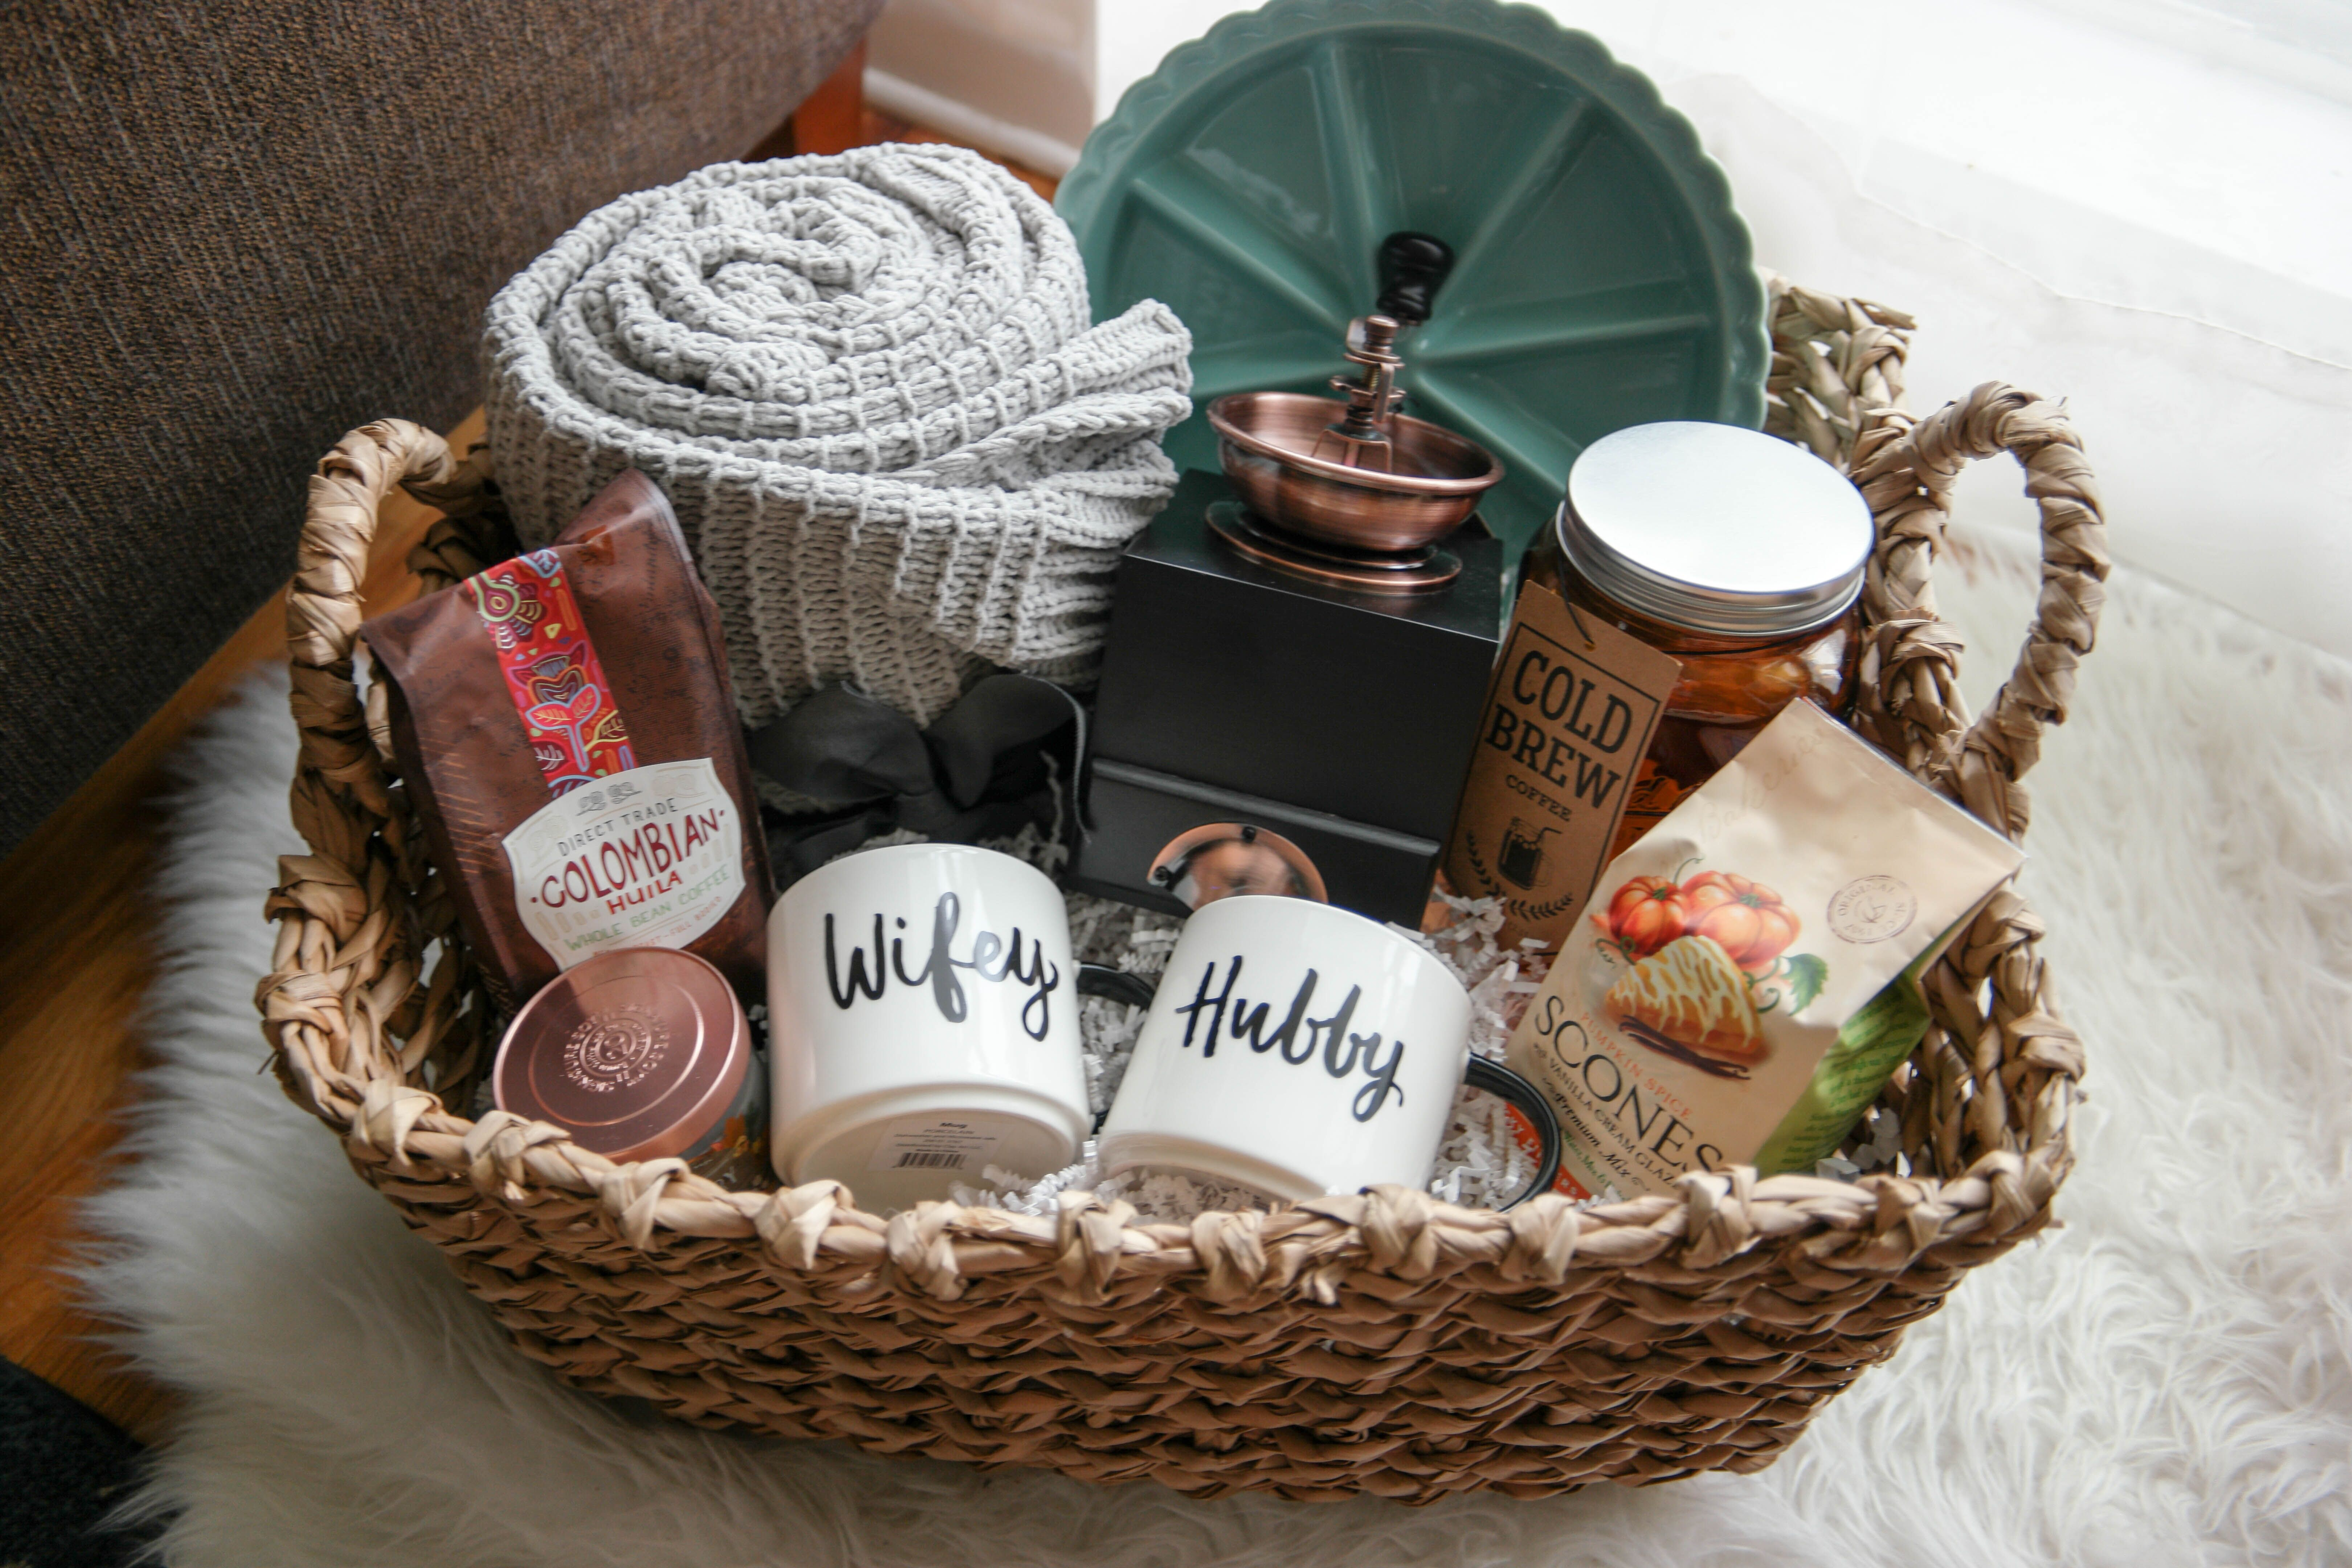 25 wellthemed gift basket ideas for any ocassion